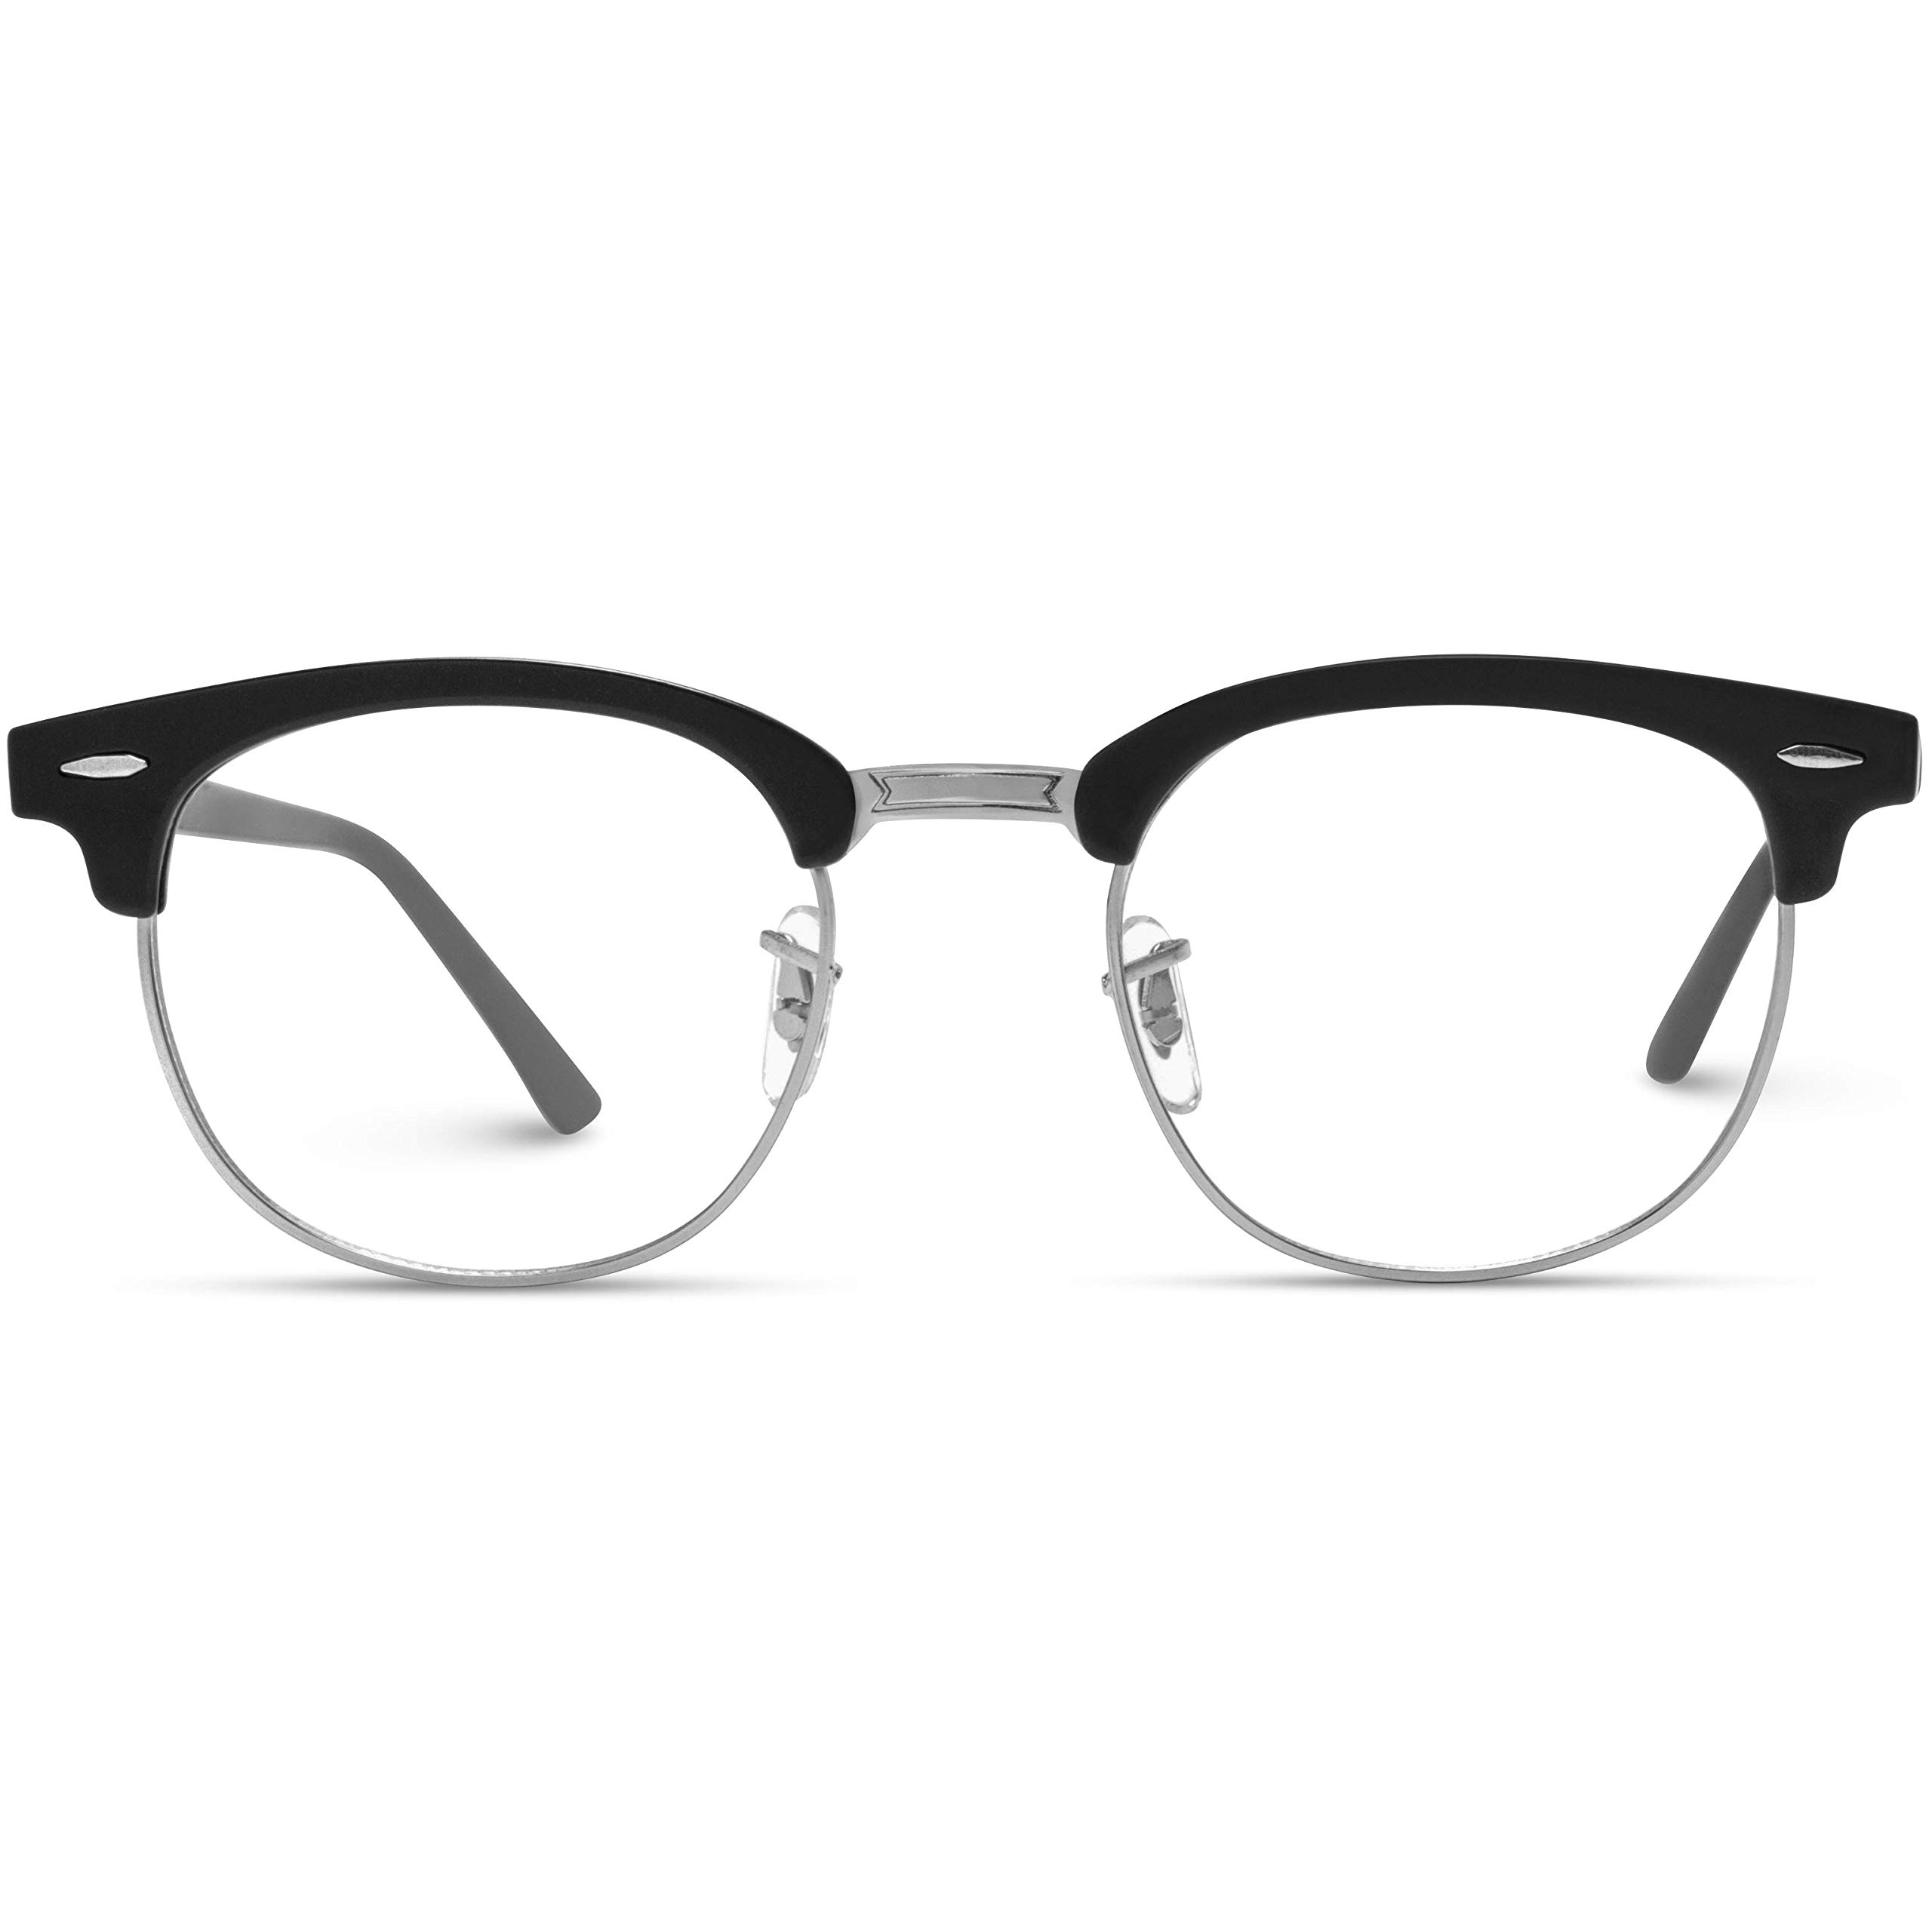 Vintage Inspired Classic Half Frame Horn Rimmed Clear Lens Glasses Optical Quality by WearMe Pro